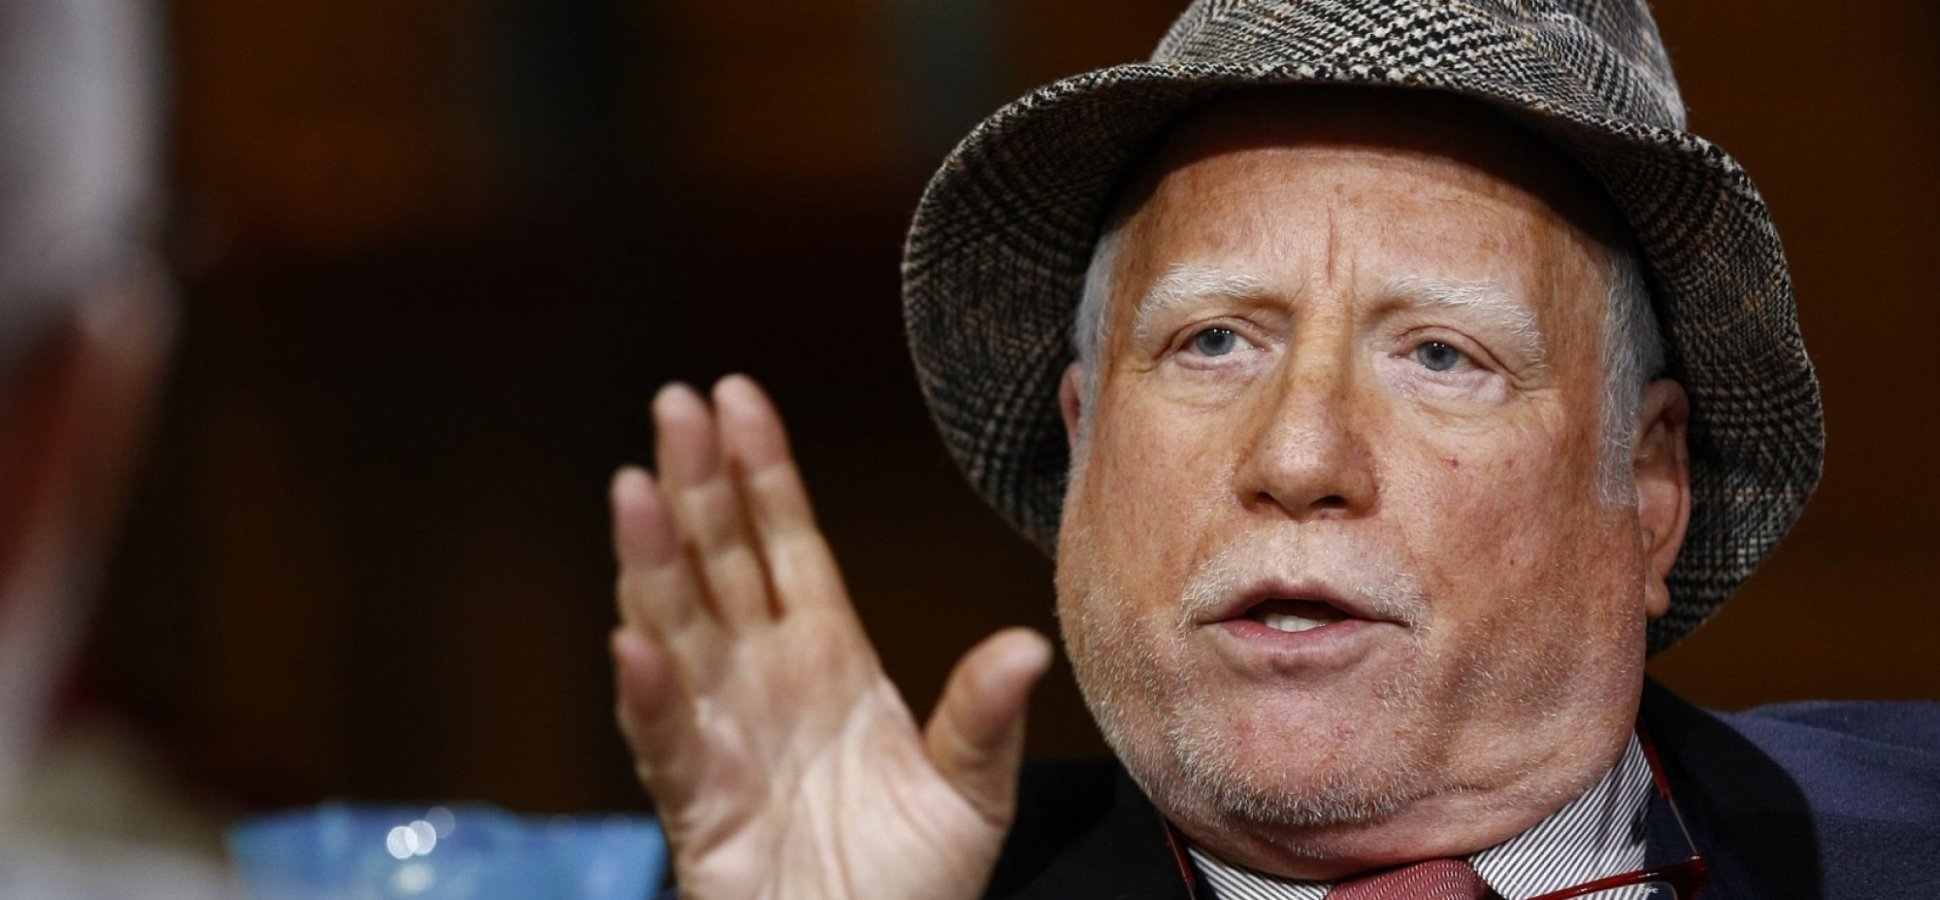 Richard Dreyfuss Got Some Stunning Advice About Goals. It Changed His Life